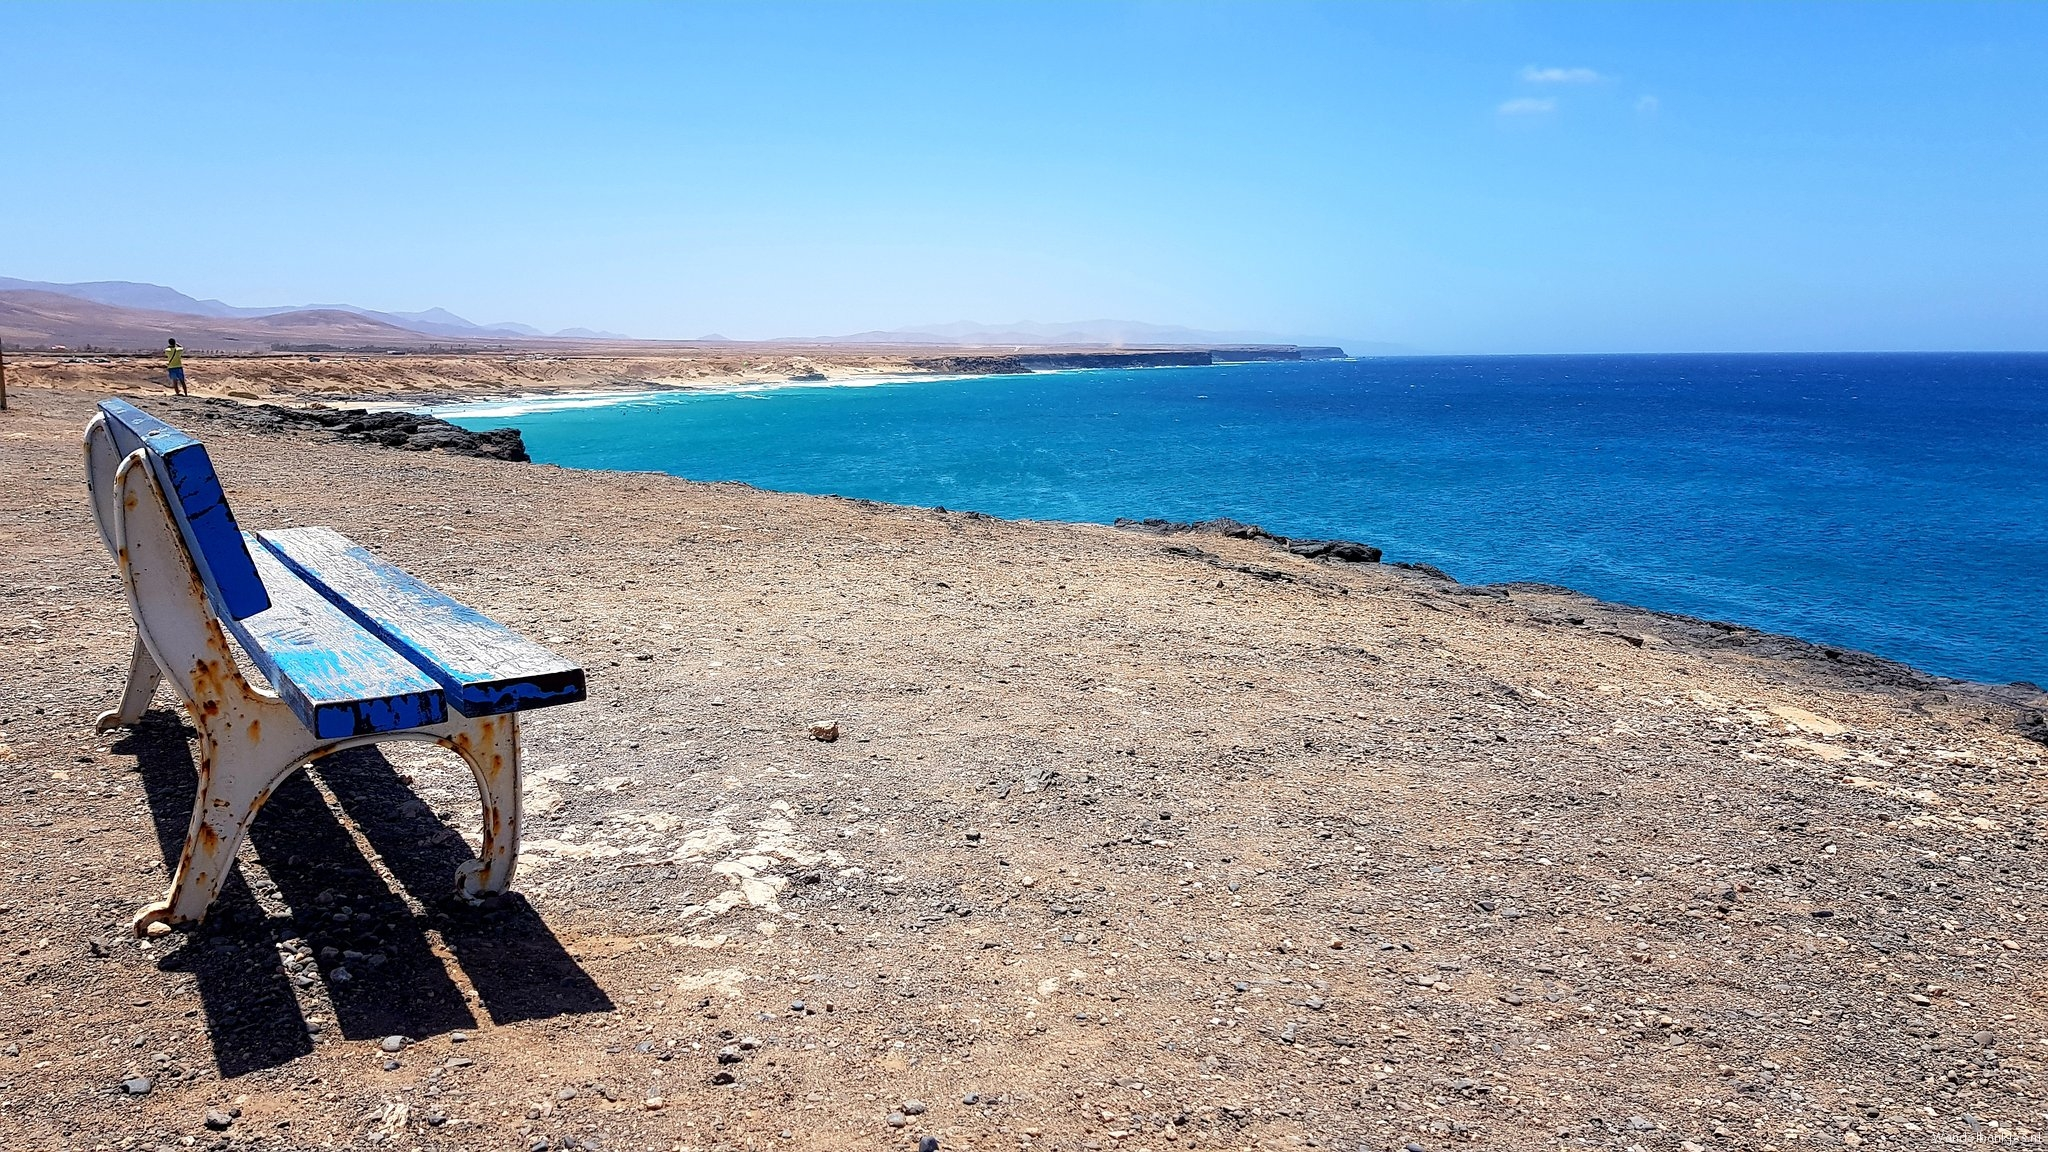 rt-hansterheijne-fuerteventura-elcotillo-wandelbankjes-walkersbenches-myfavebench-https-t-co-adjppog19b